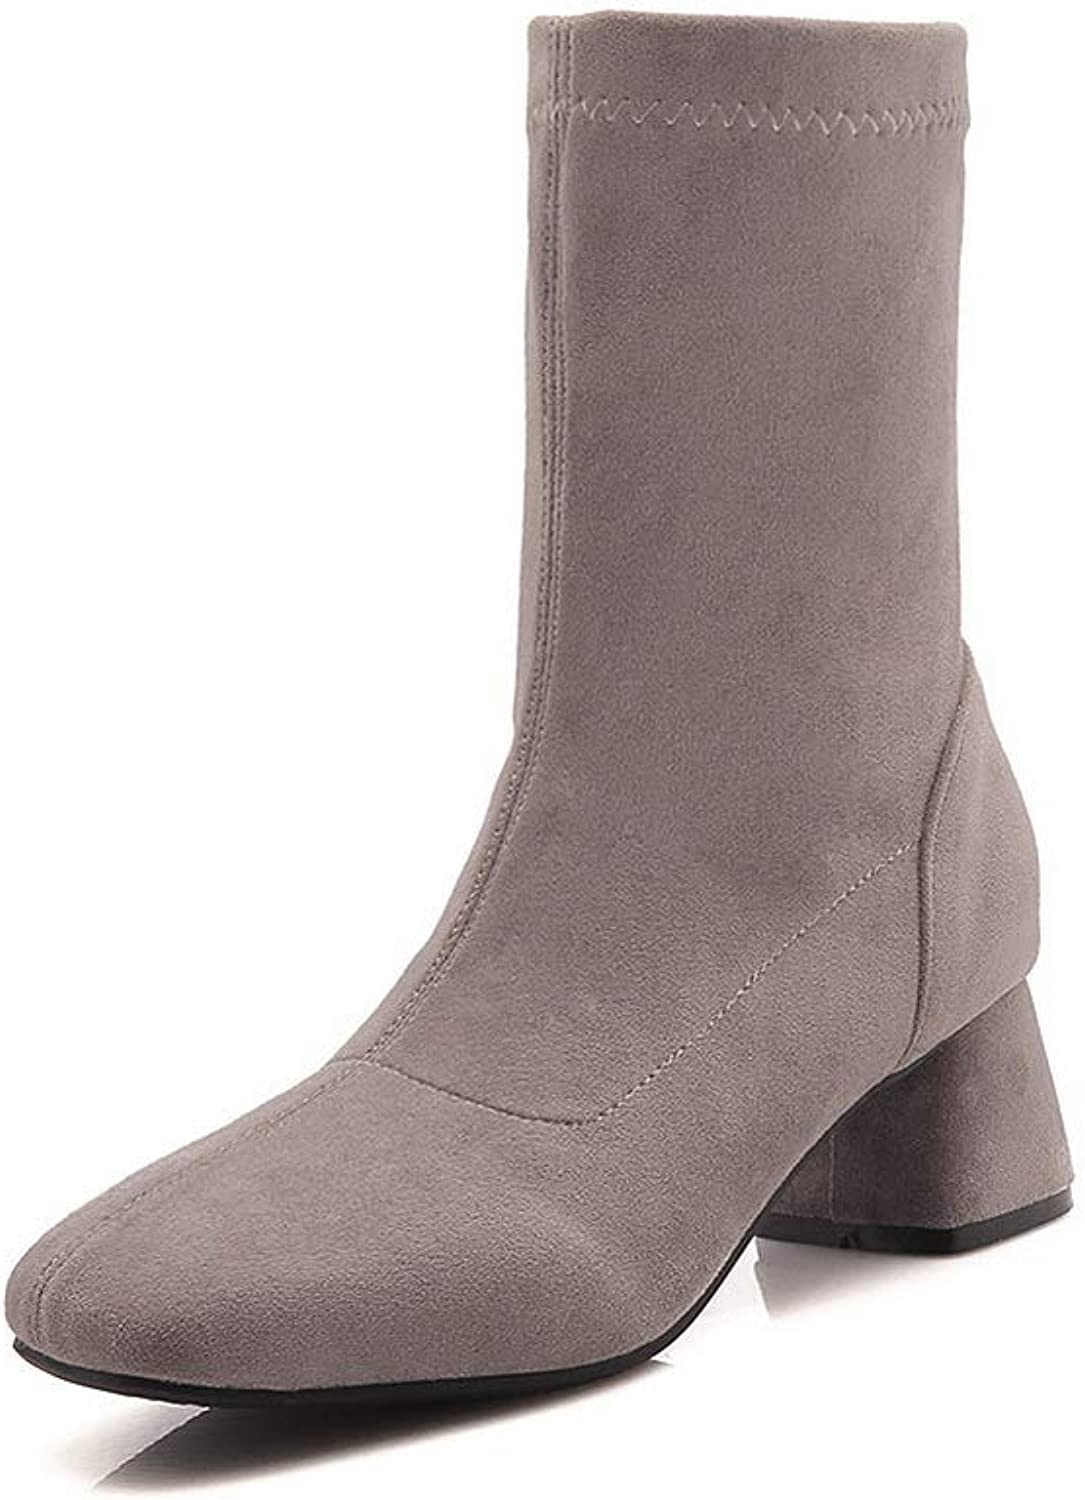 AN Womens Square Heels Fabric Boots DKU02414